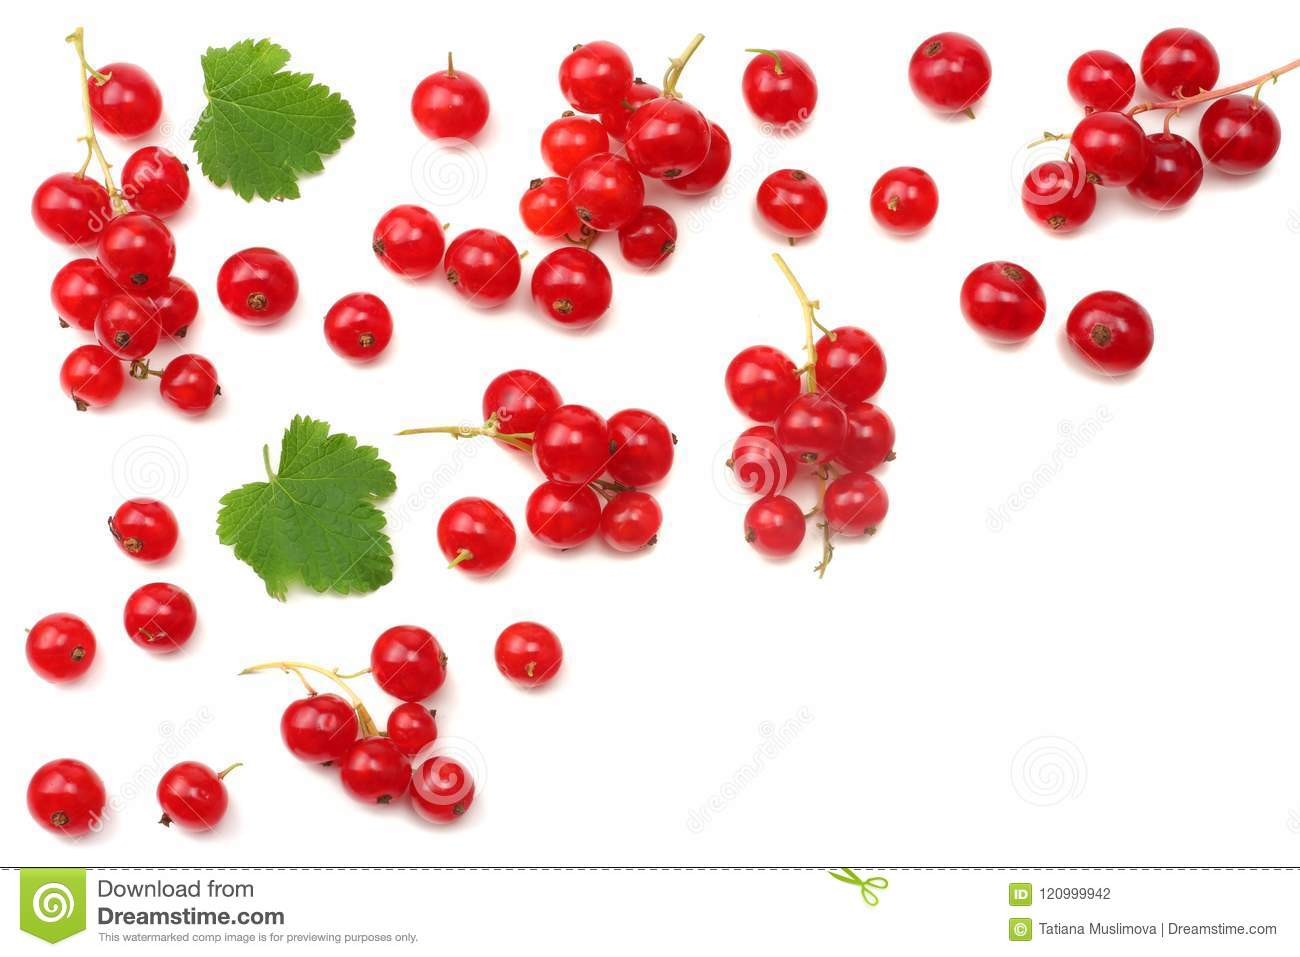 red currant with green leaf isolated on a white background. healthy food. top view